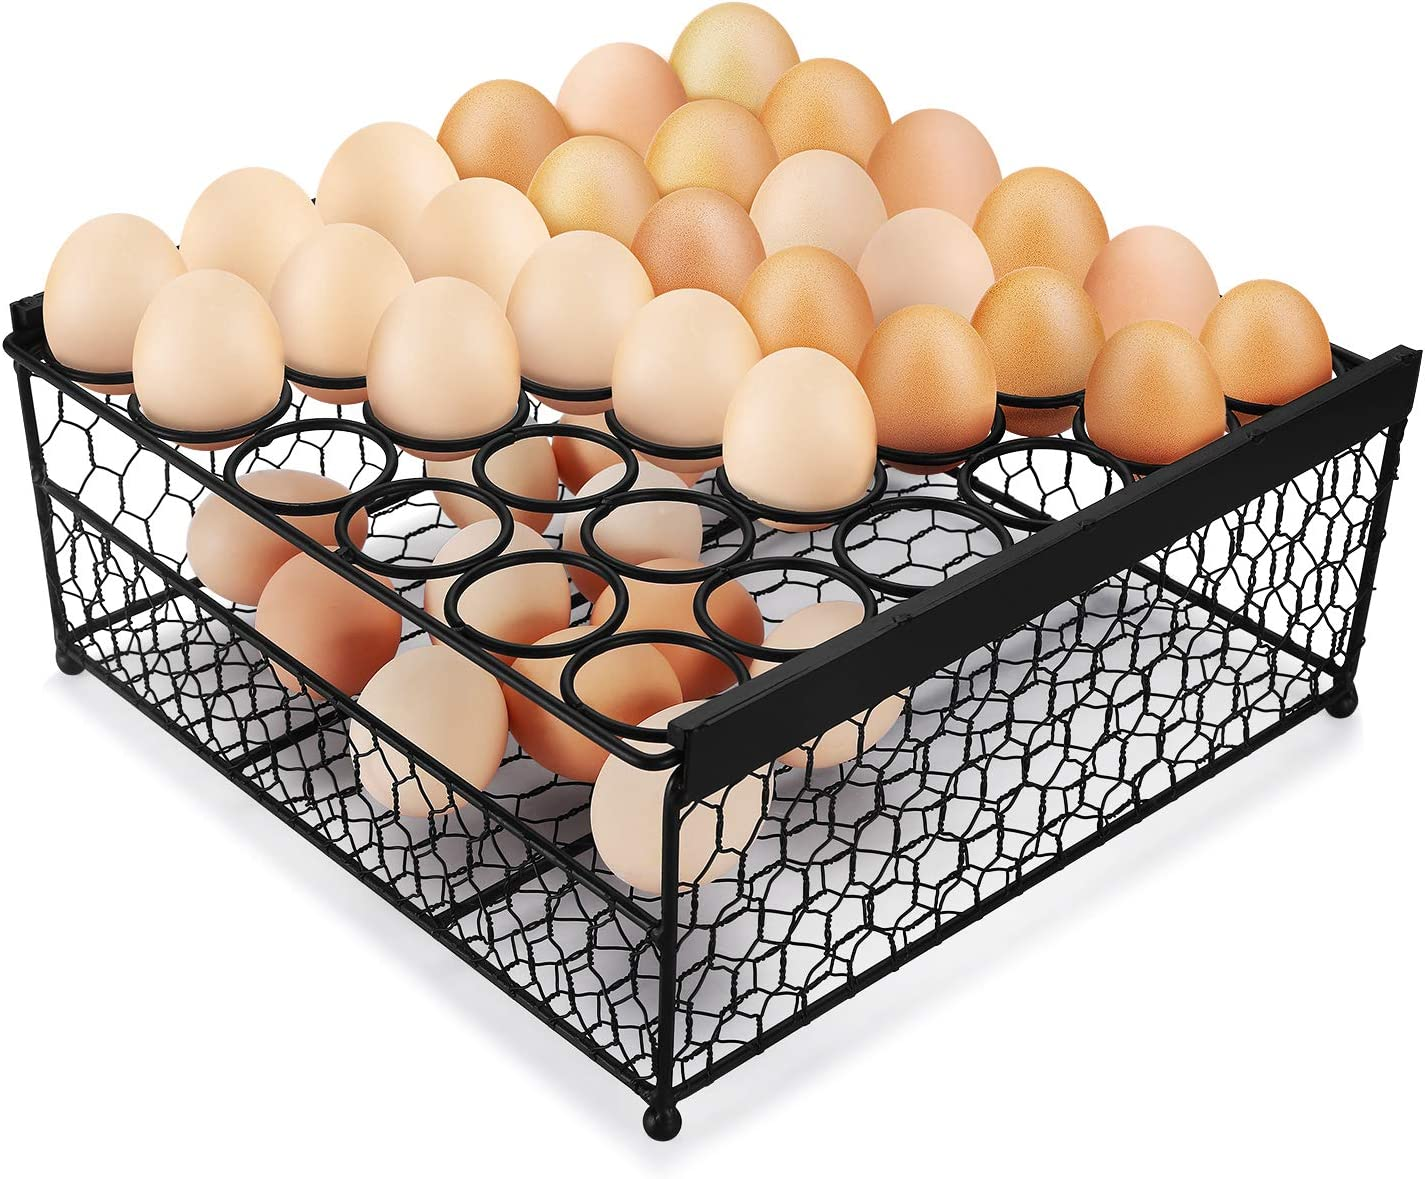 Flexzion Egg Storage Basket Limited price 2 Tier Chicken Super beauty product restock quality top! w Eg Top Wire